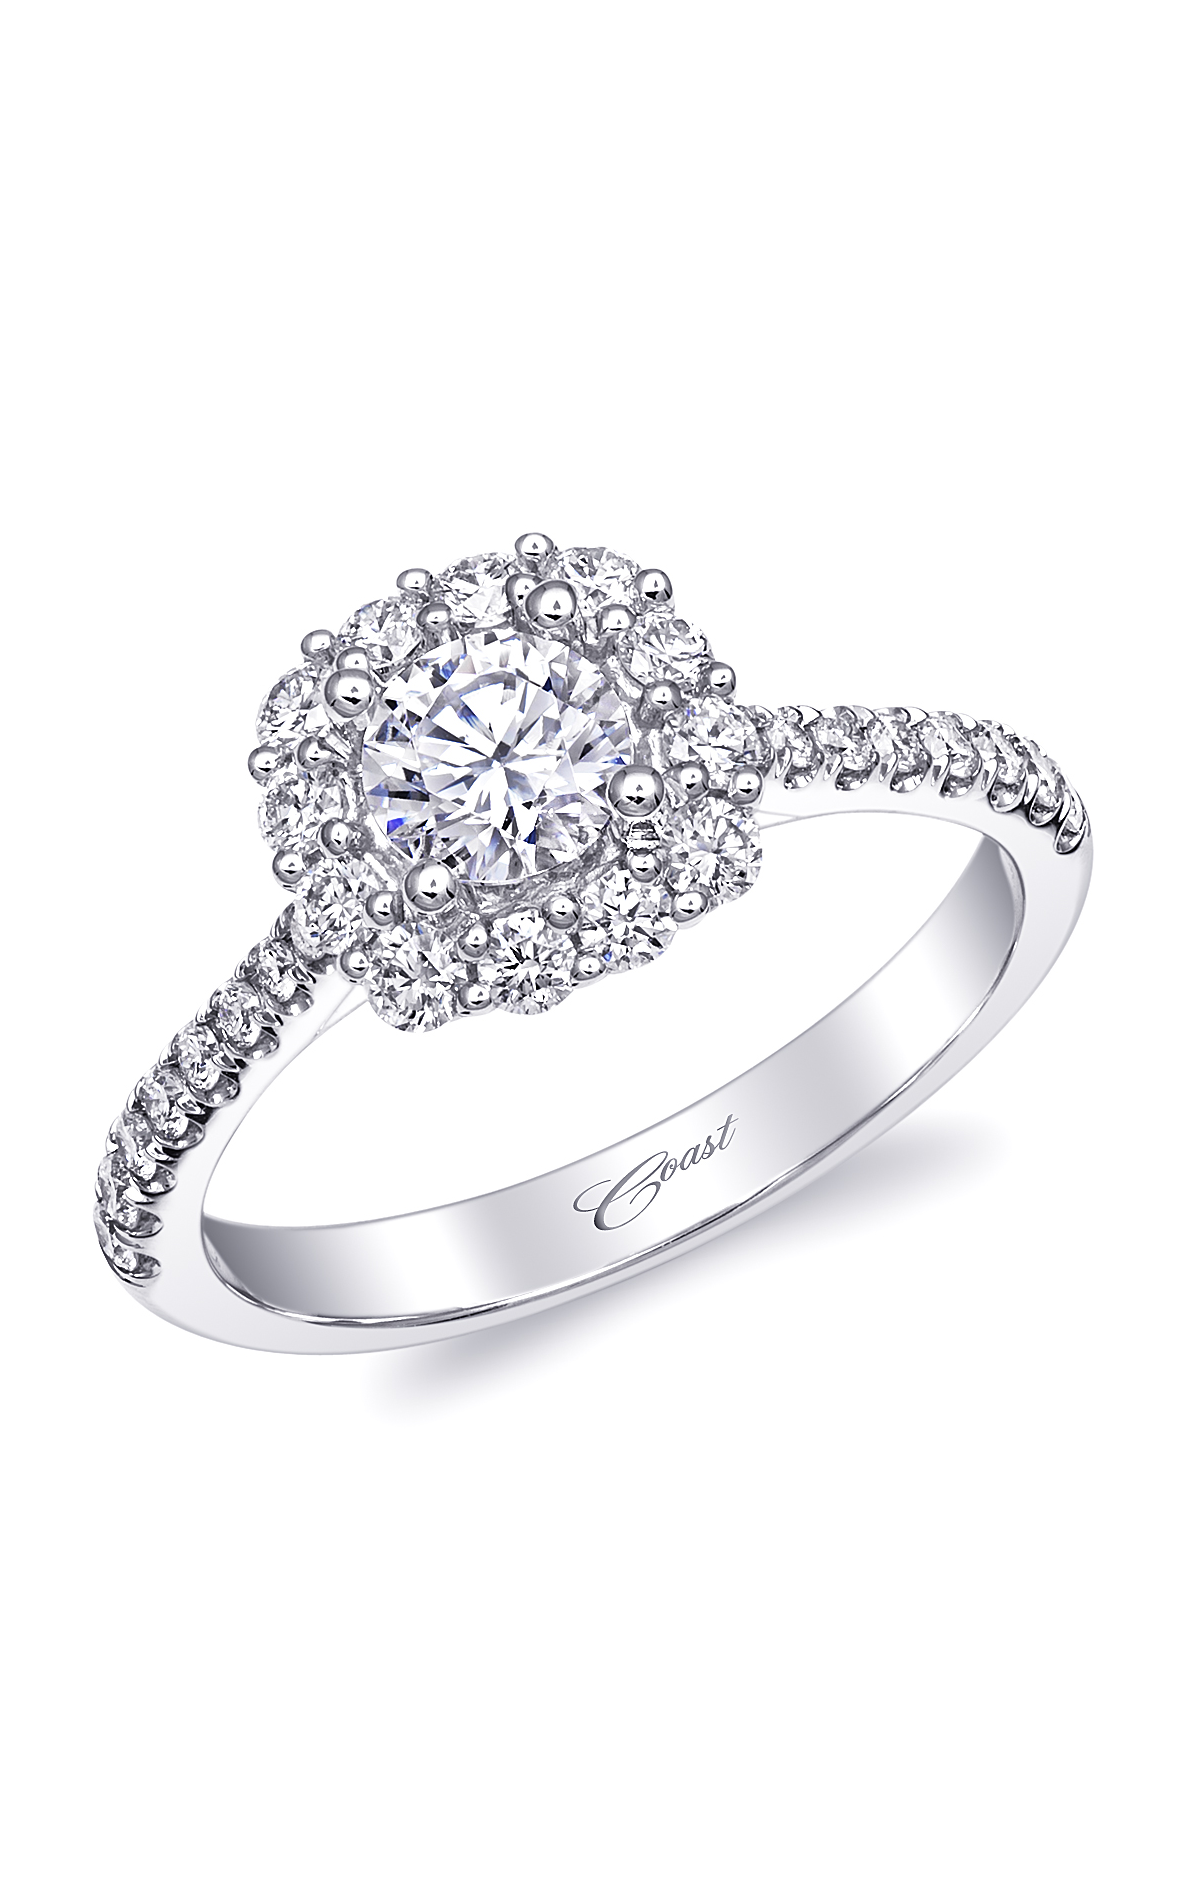 Coast Diamond Charisma LC5257-050 product image